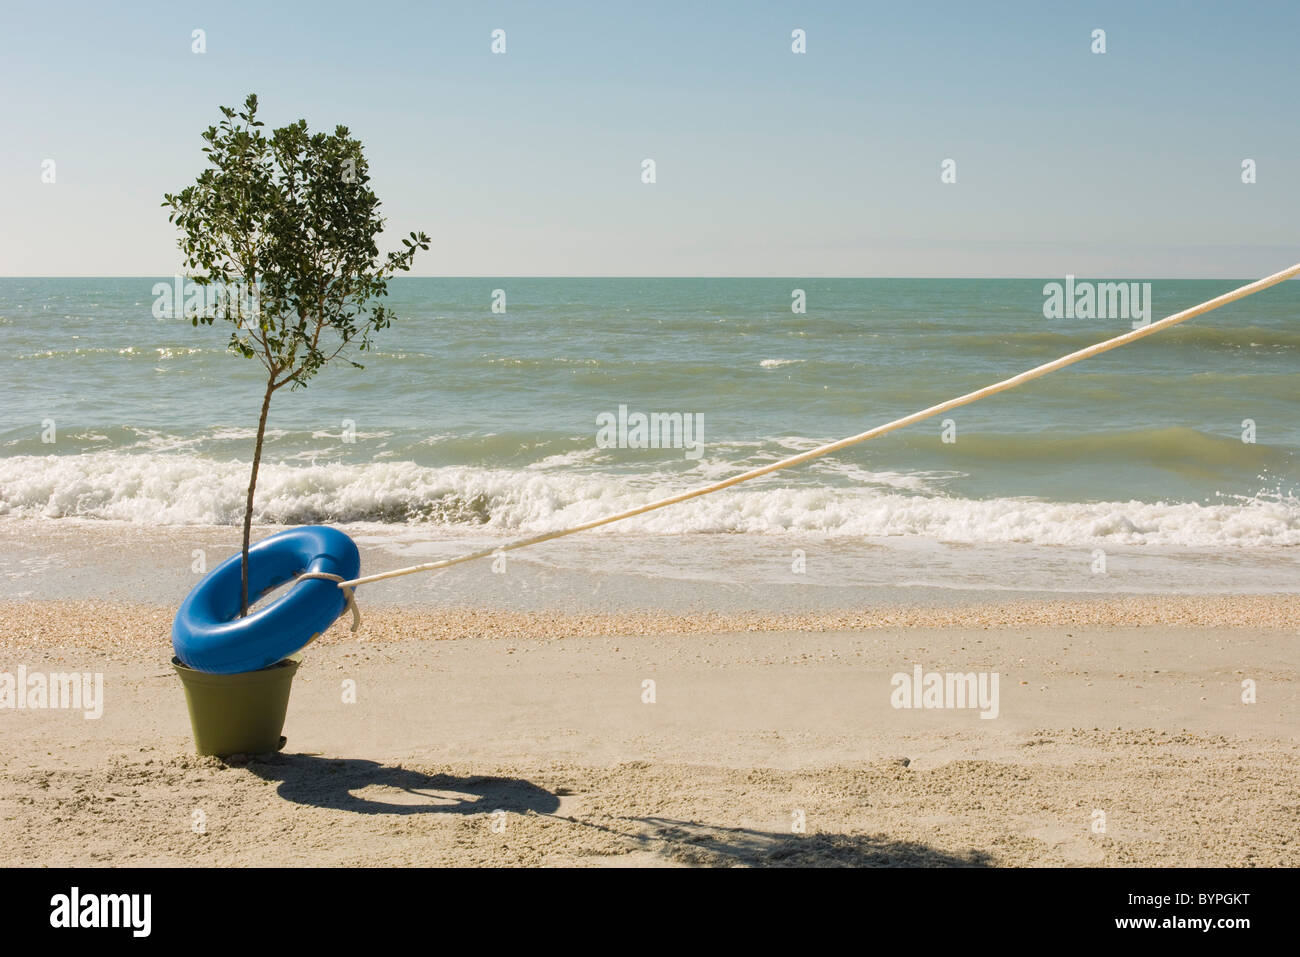 Rope attached to life belt encircling tree growing at water's edge on beach - Stock Image